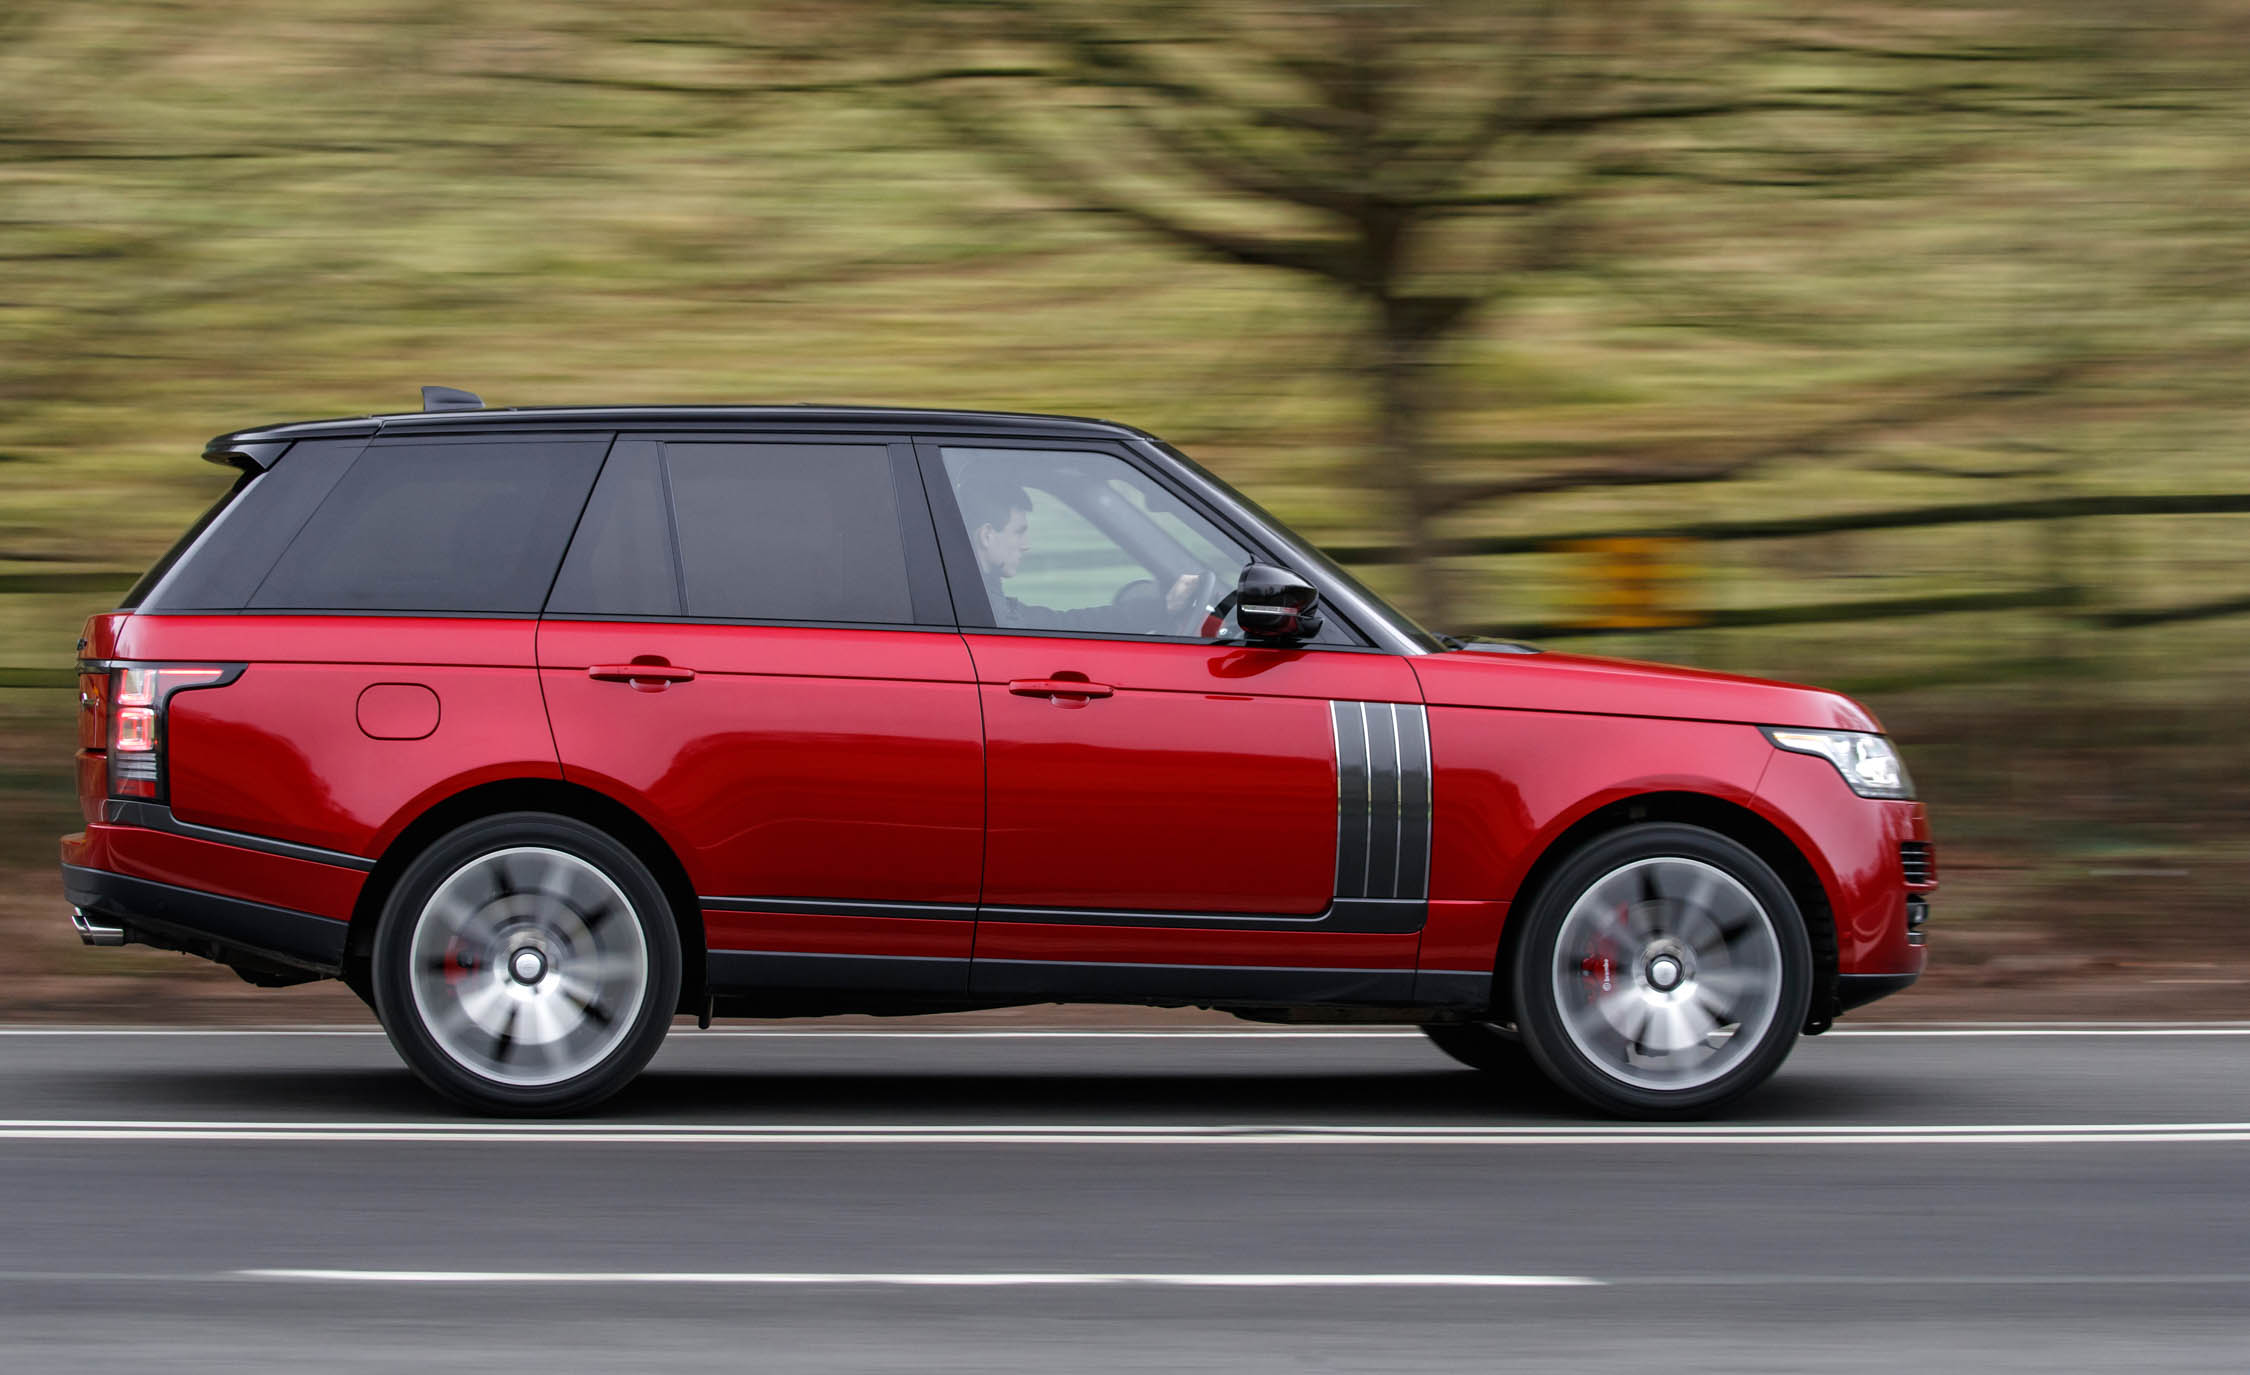 2017 Land Rover Range Rover SVAutobiography Dynamic Test Drive Side View (Photo 22 of 24)